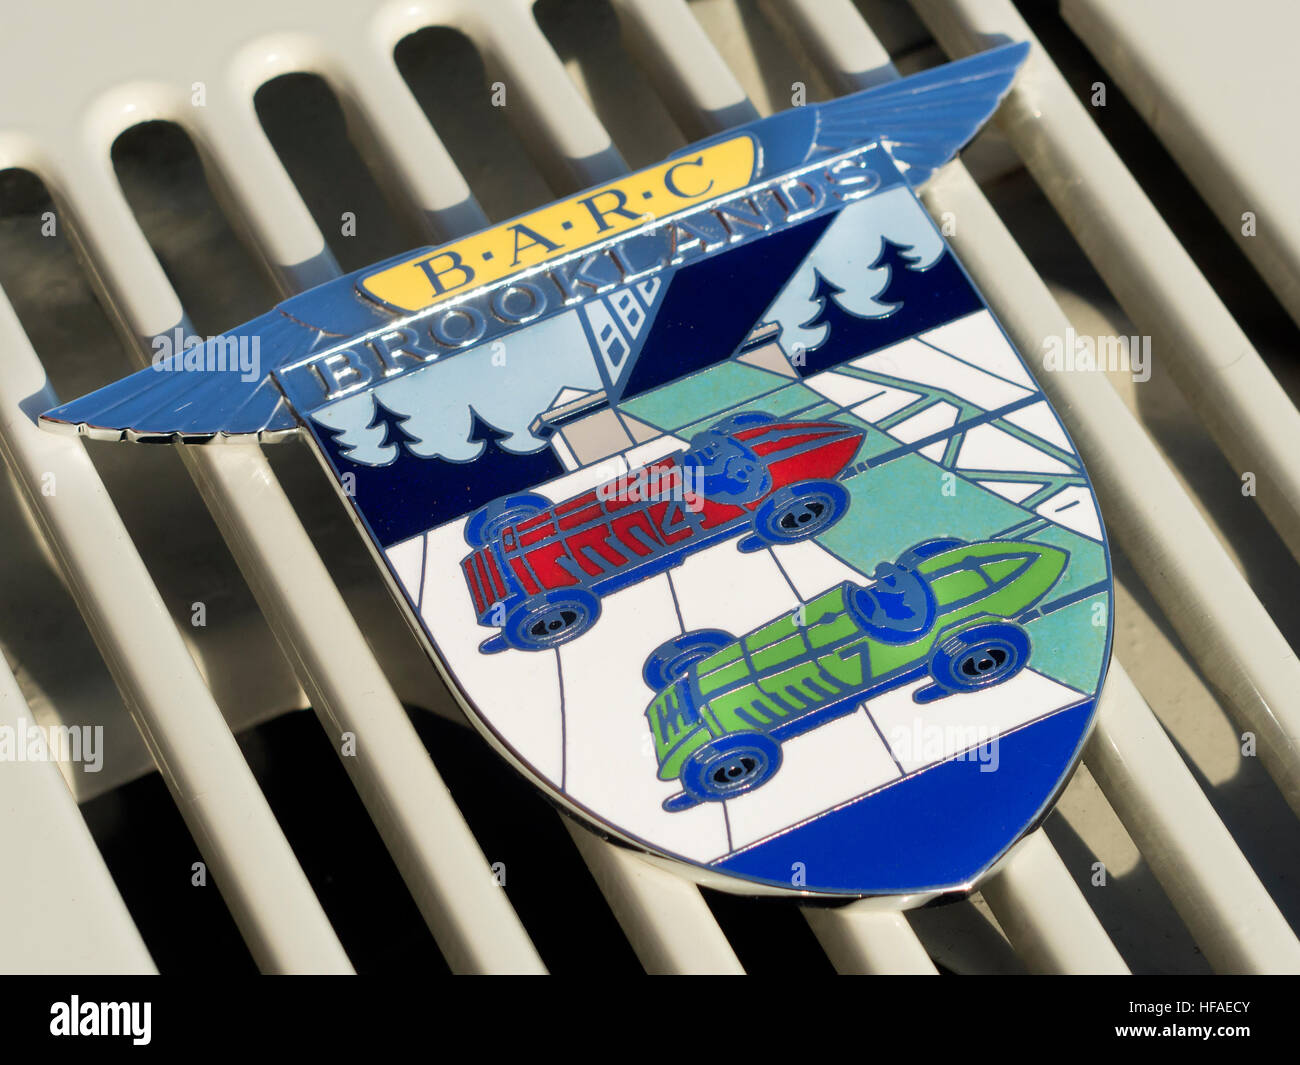 B.A.R.C. Brooklands automobile badge. - Stock Image